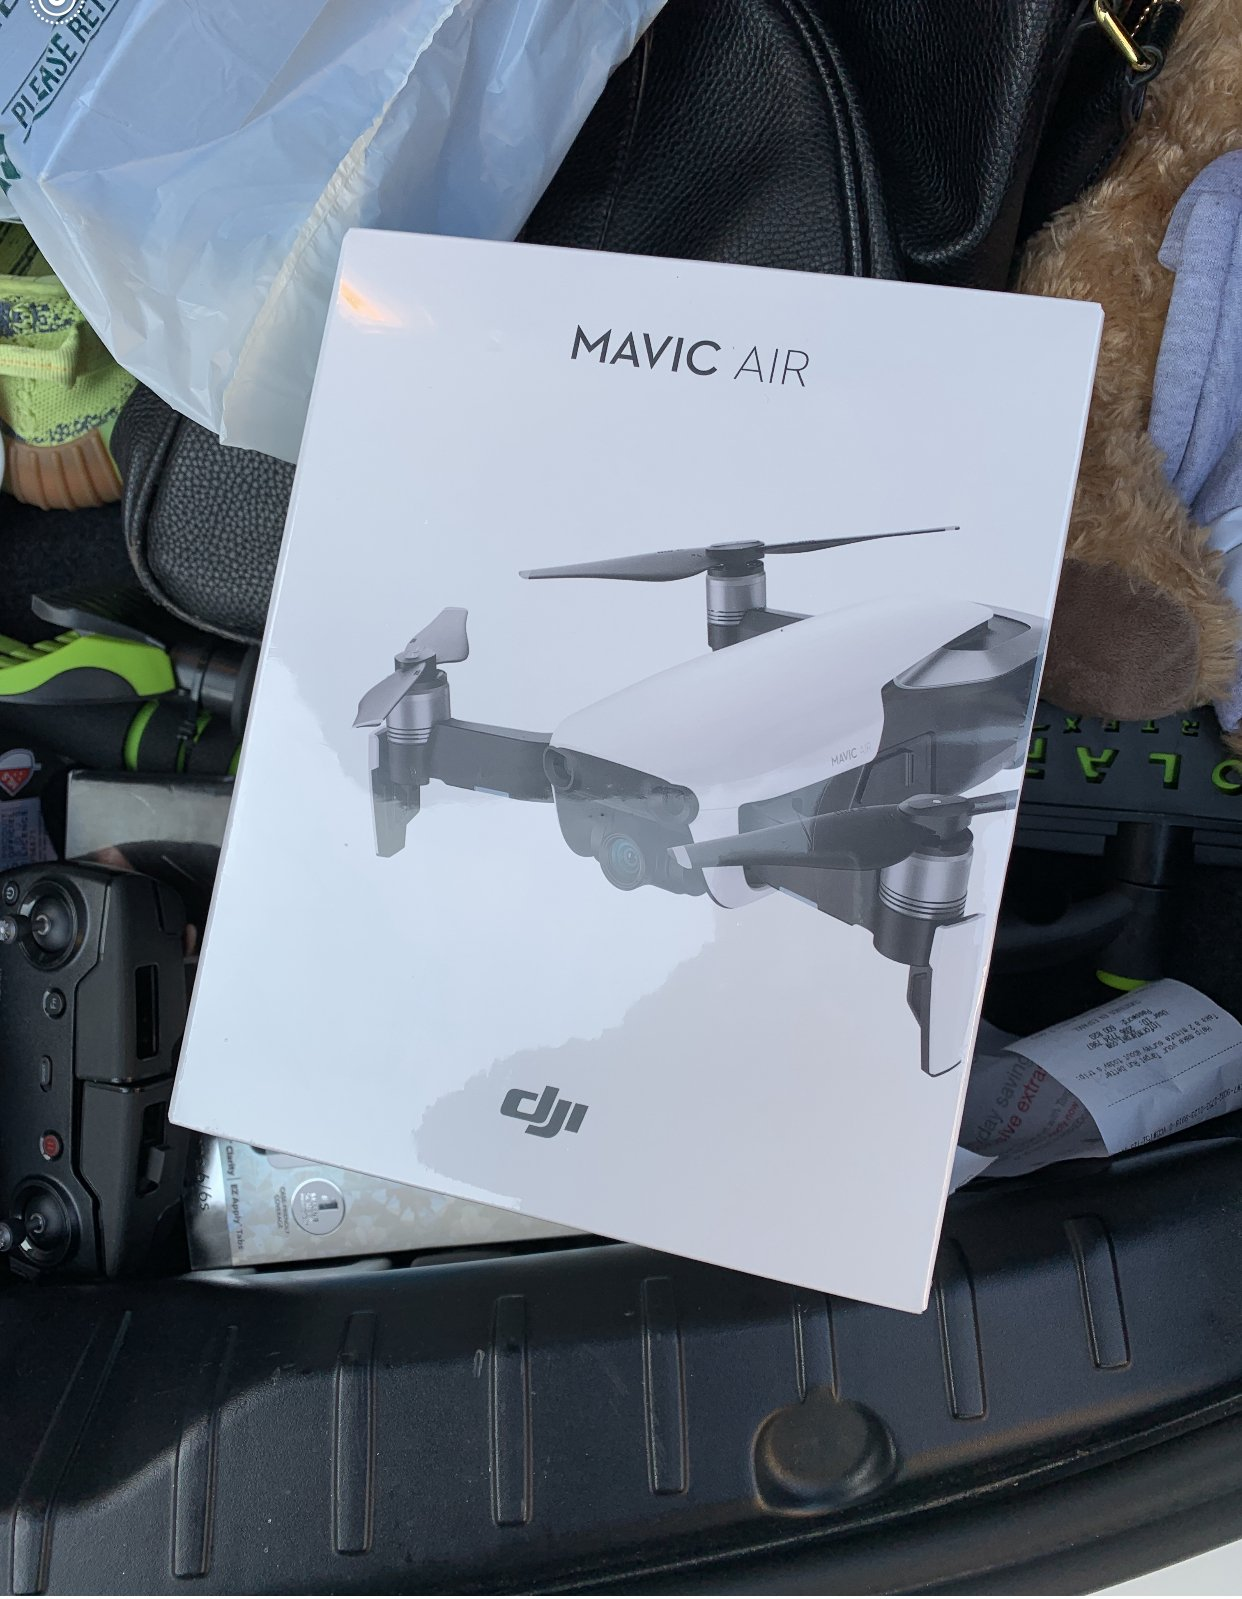 Mavic air brand new in box Image